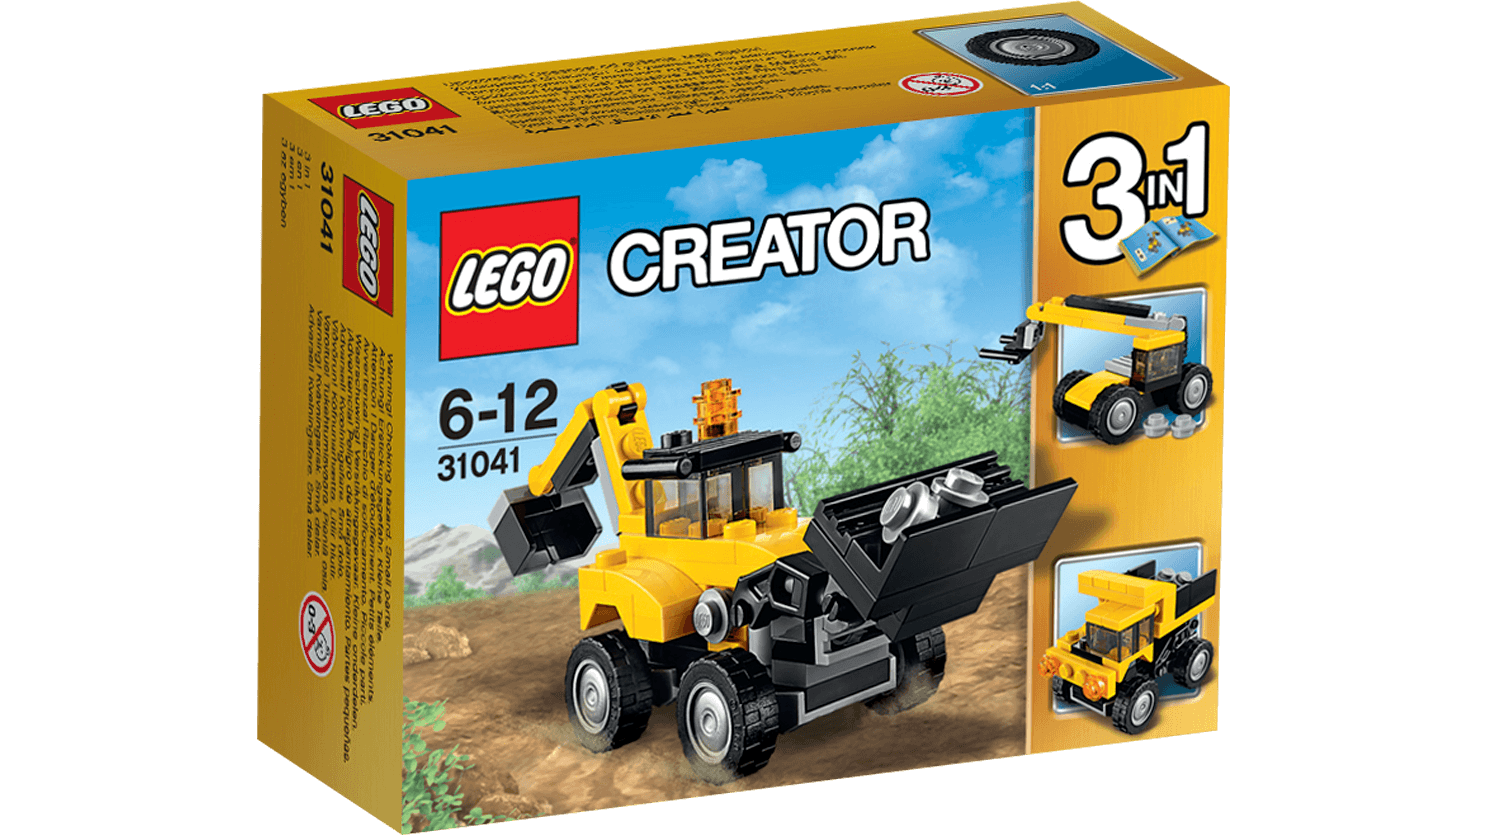 LEGO CREATOR 31041 Construction Vehicles